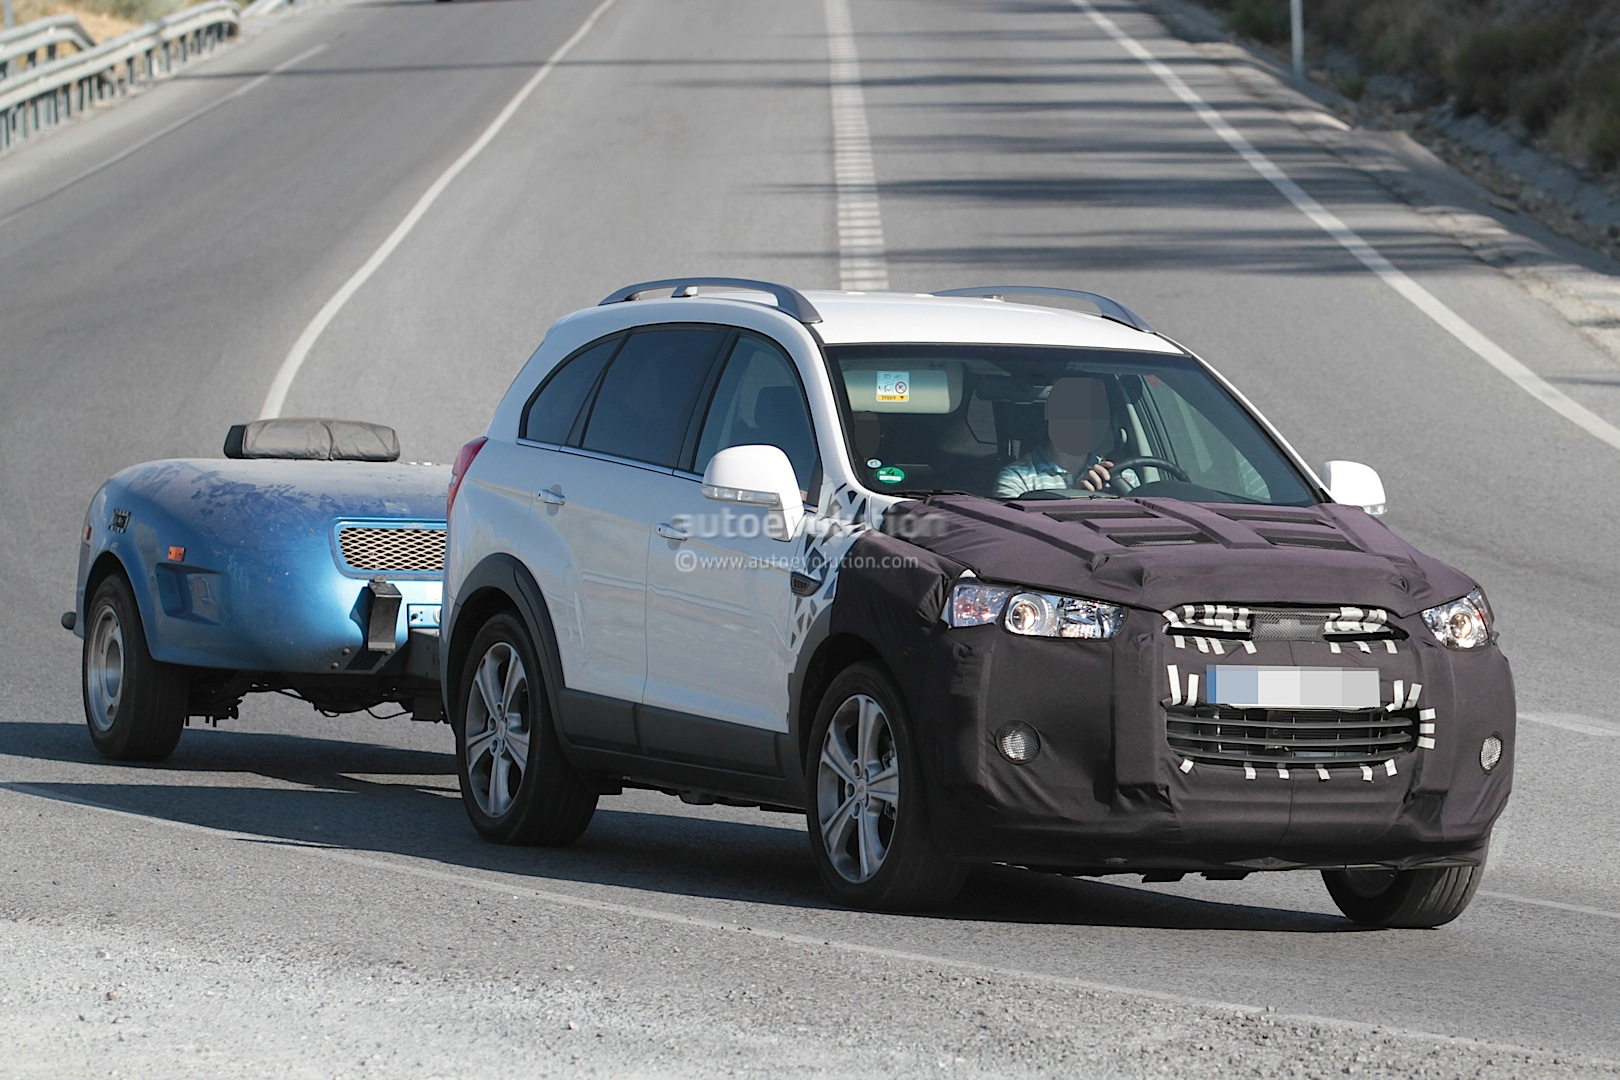 2015 chevrolet captiva opel antara facelift spied. Black Bedroom Furniture Sets. Home Design Ideas